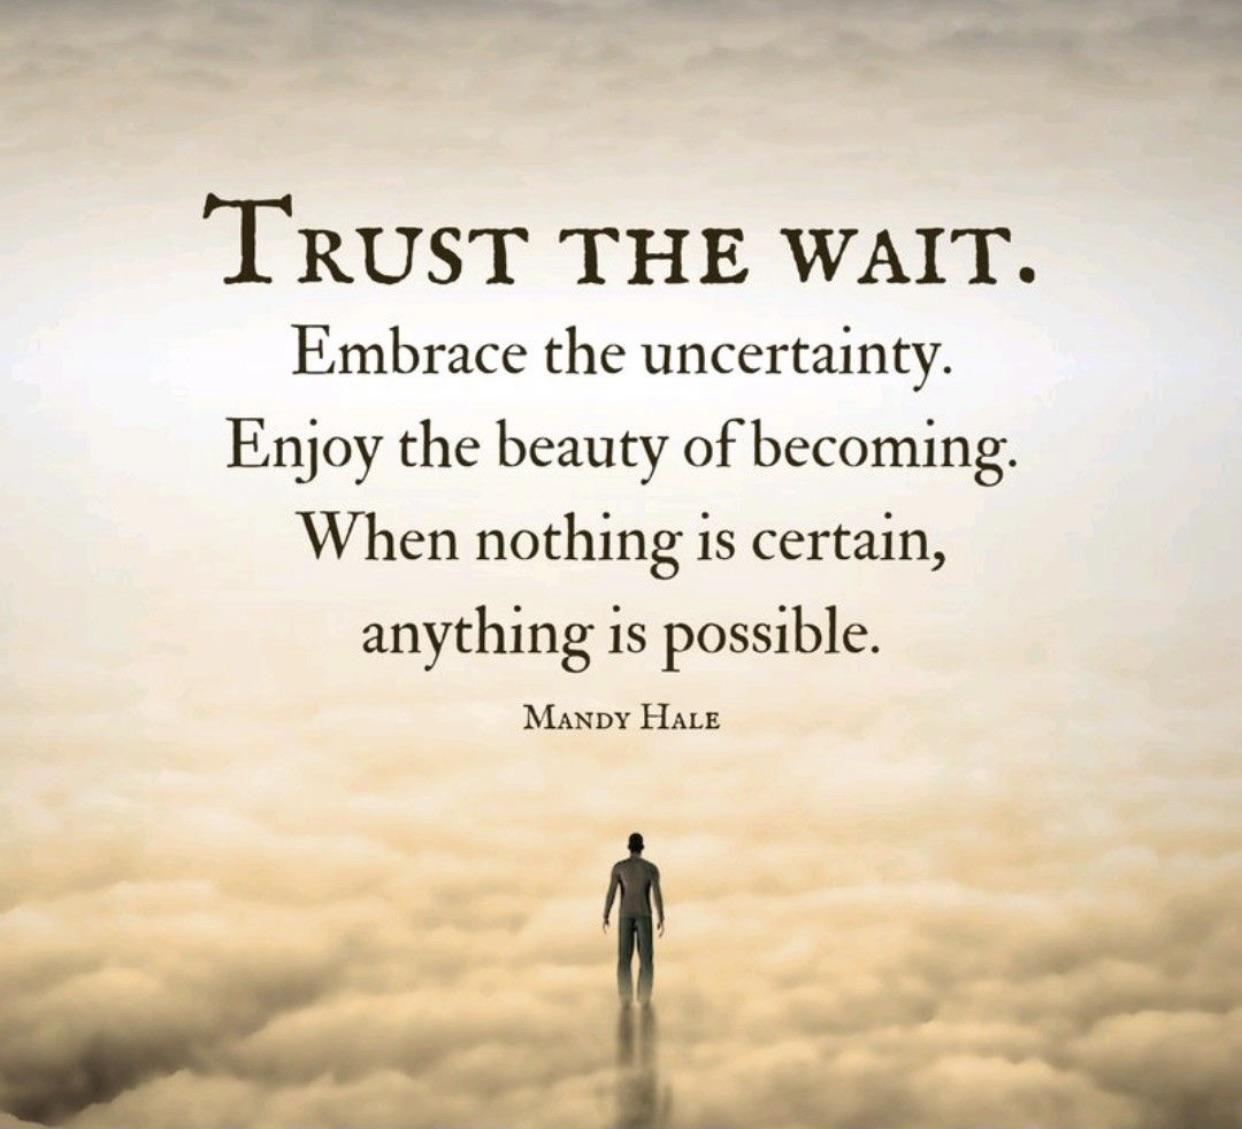 [Image] Trust the wait and enjoy the process along the way.